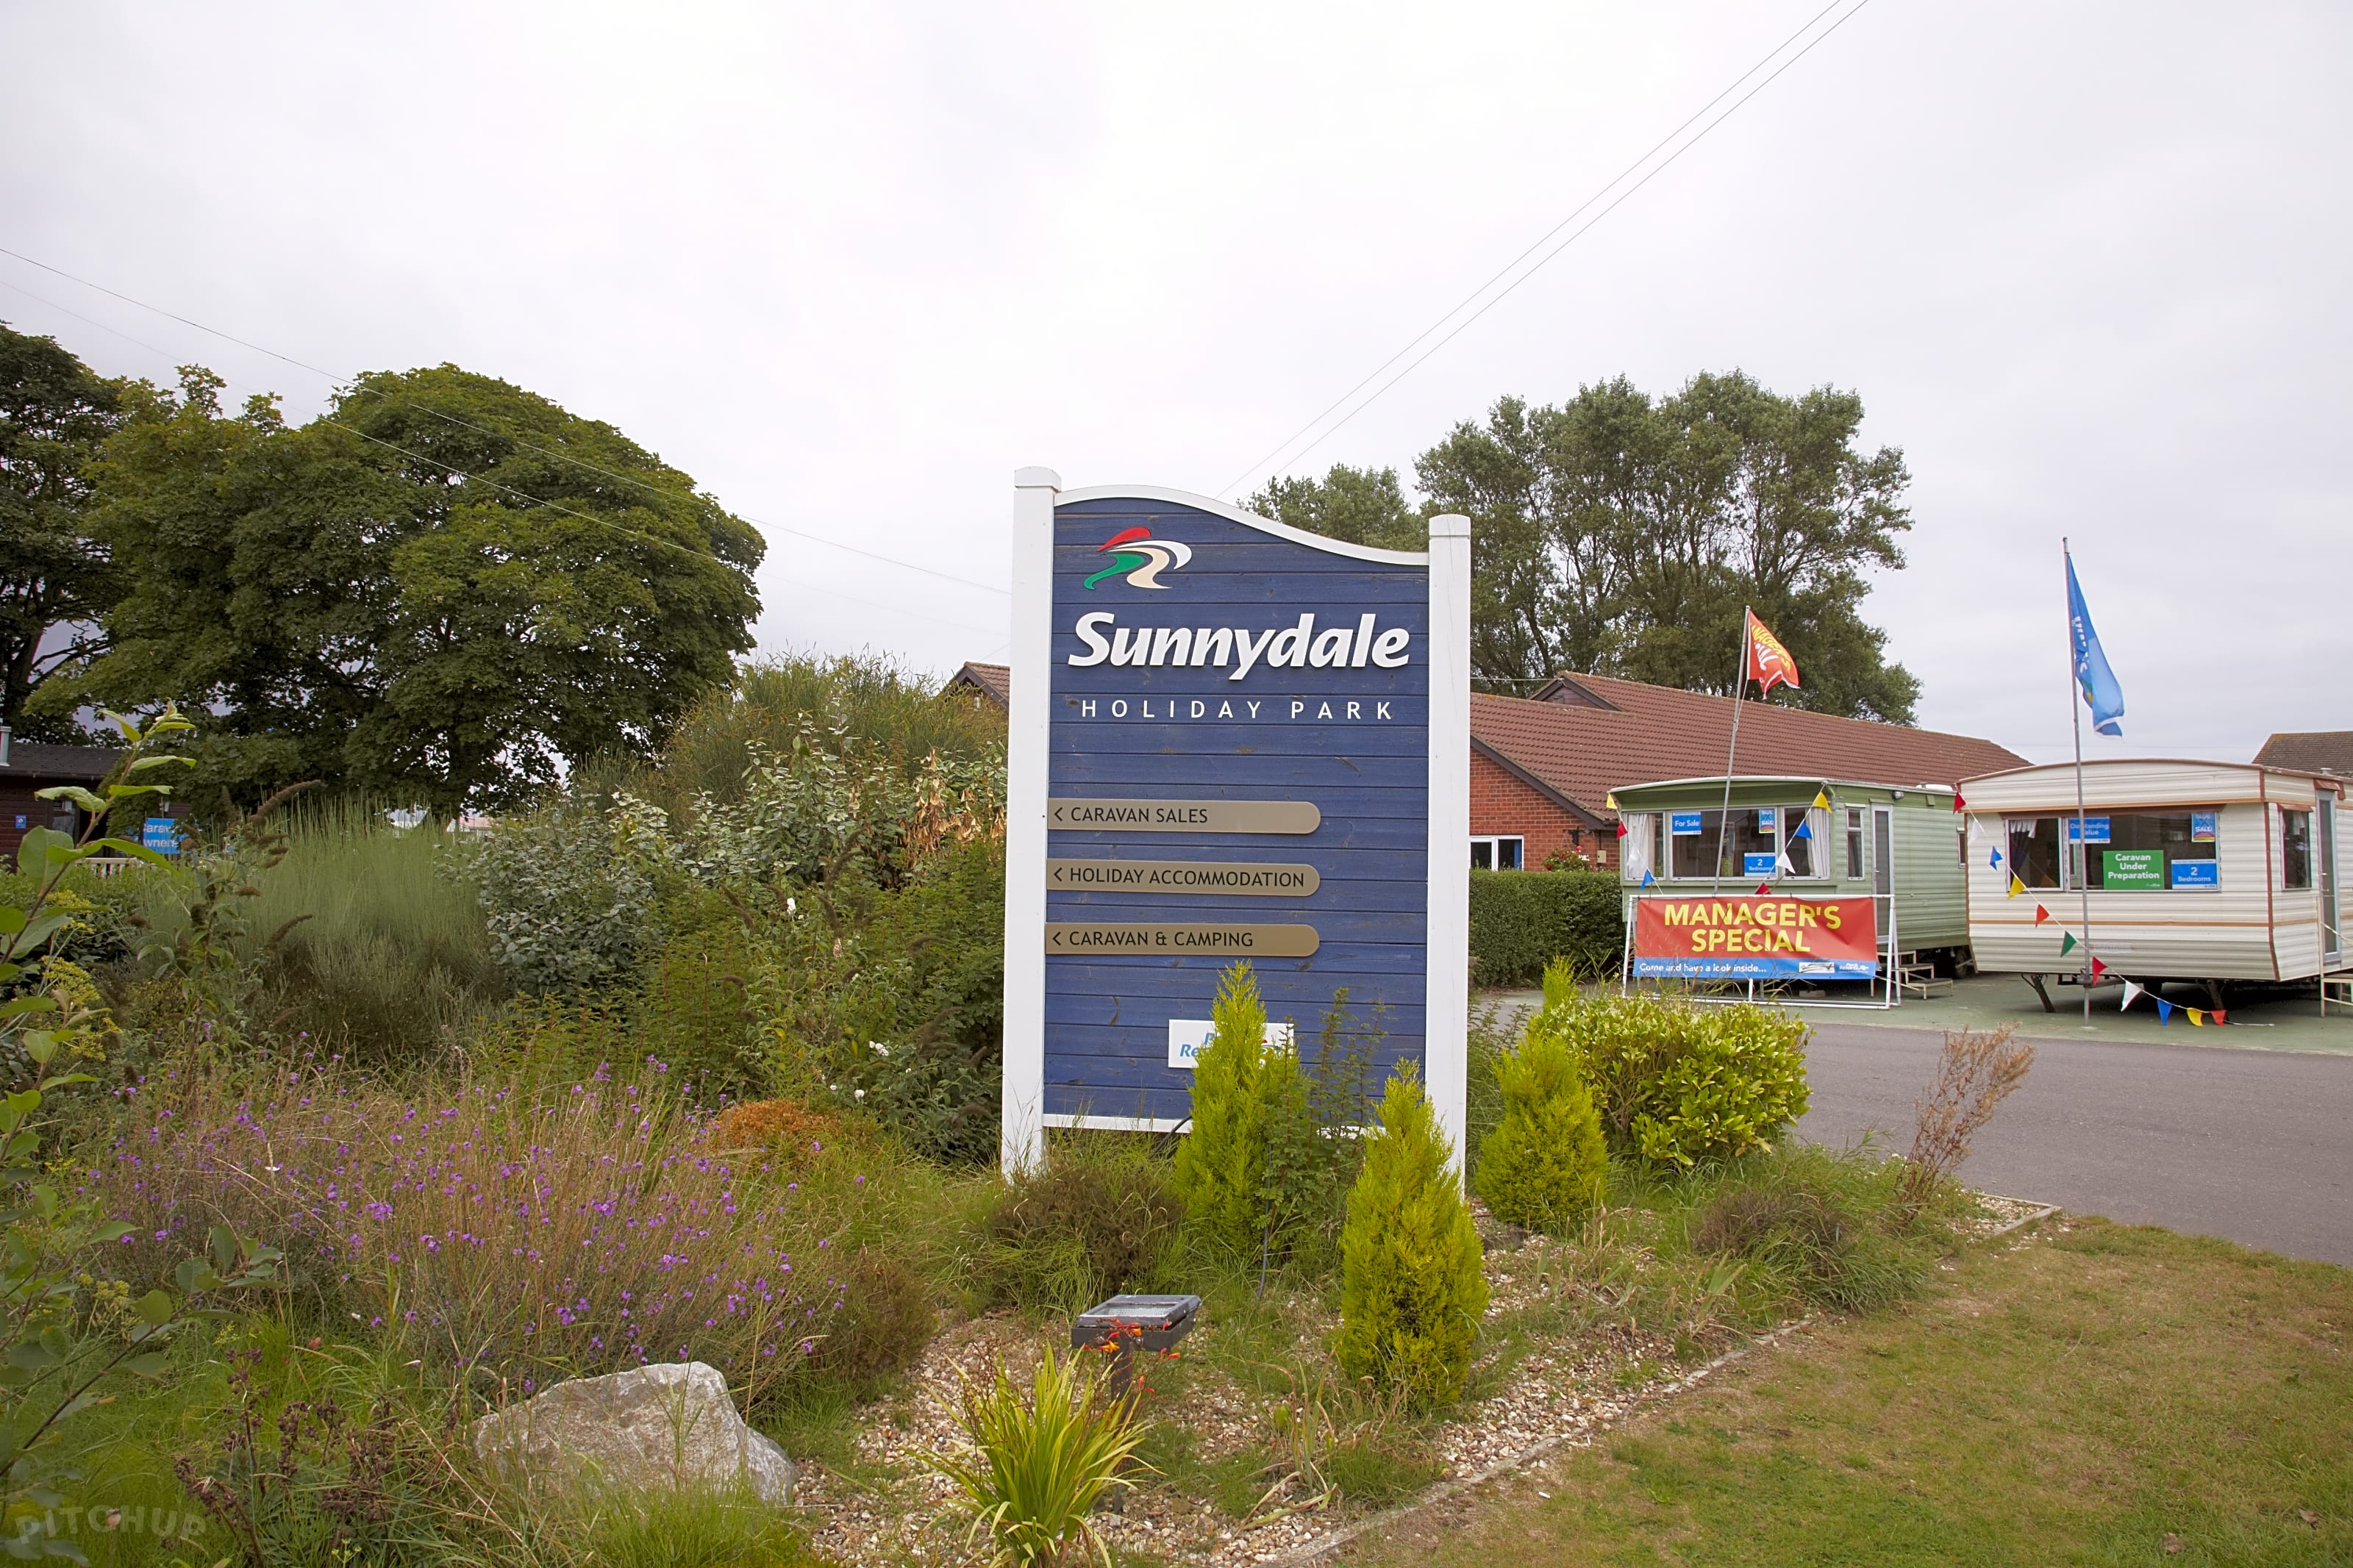 Sunnydale Holiday Park, Louth - Updated 2019 prices - Pitchup®